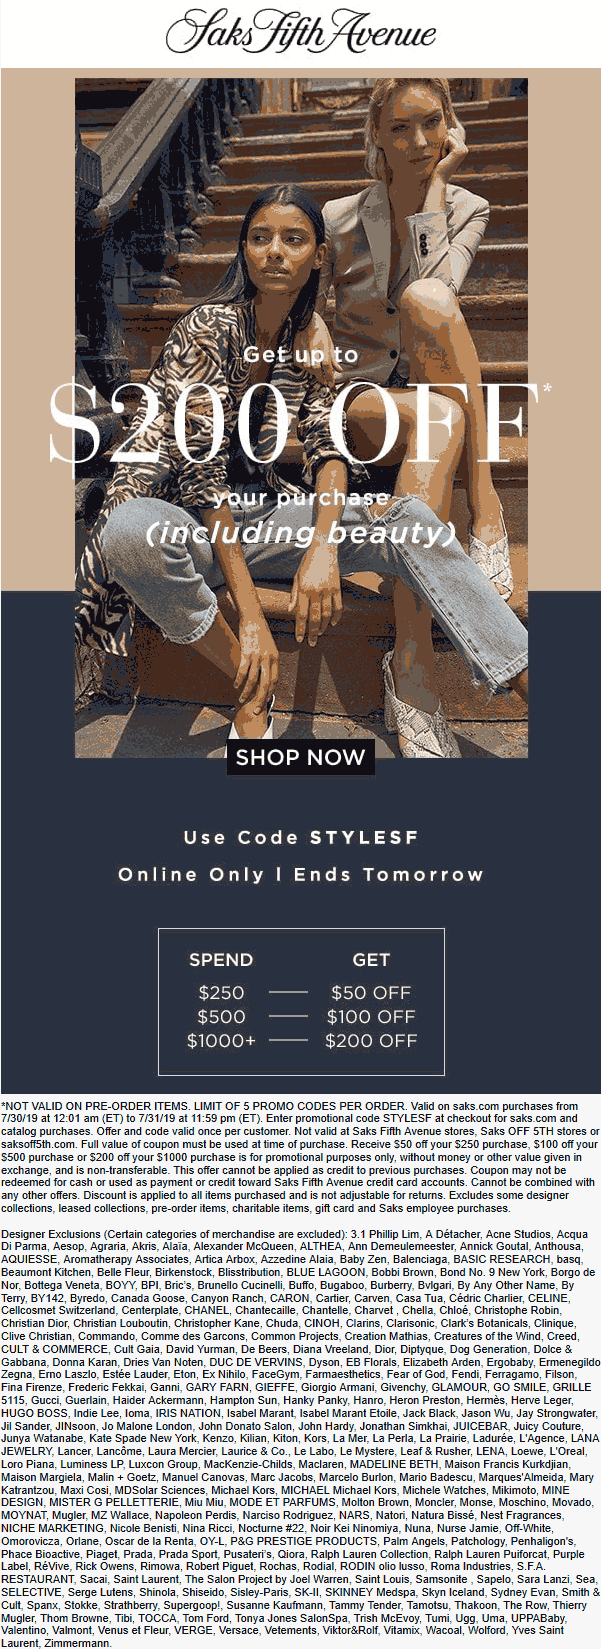 Saks Fifth Avenue coupons & promo code for [October 2020]